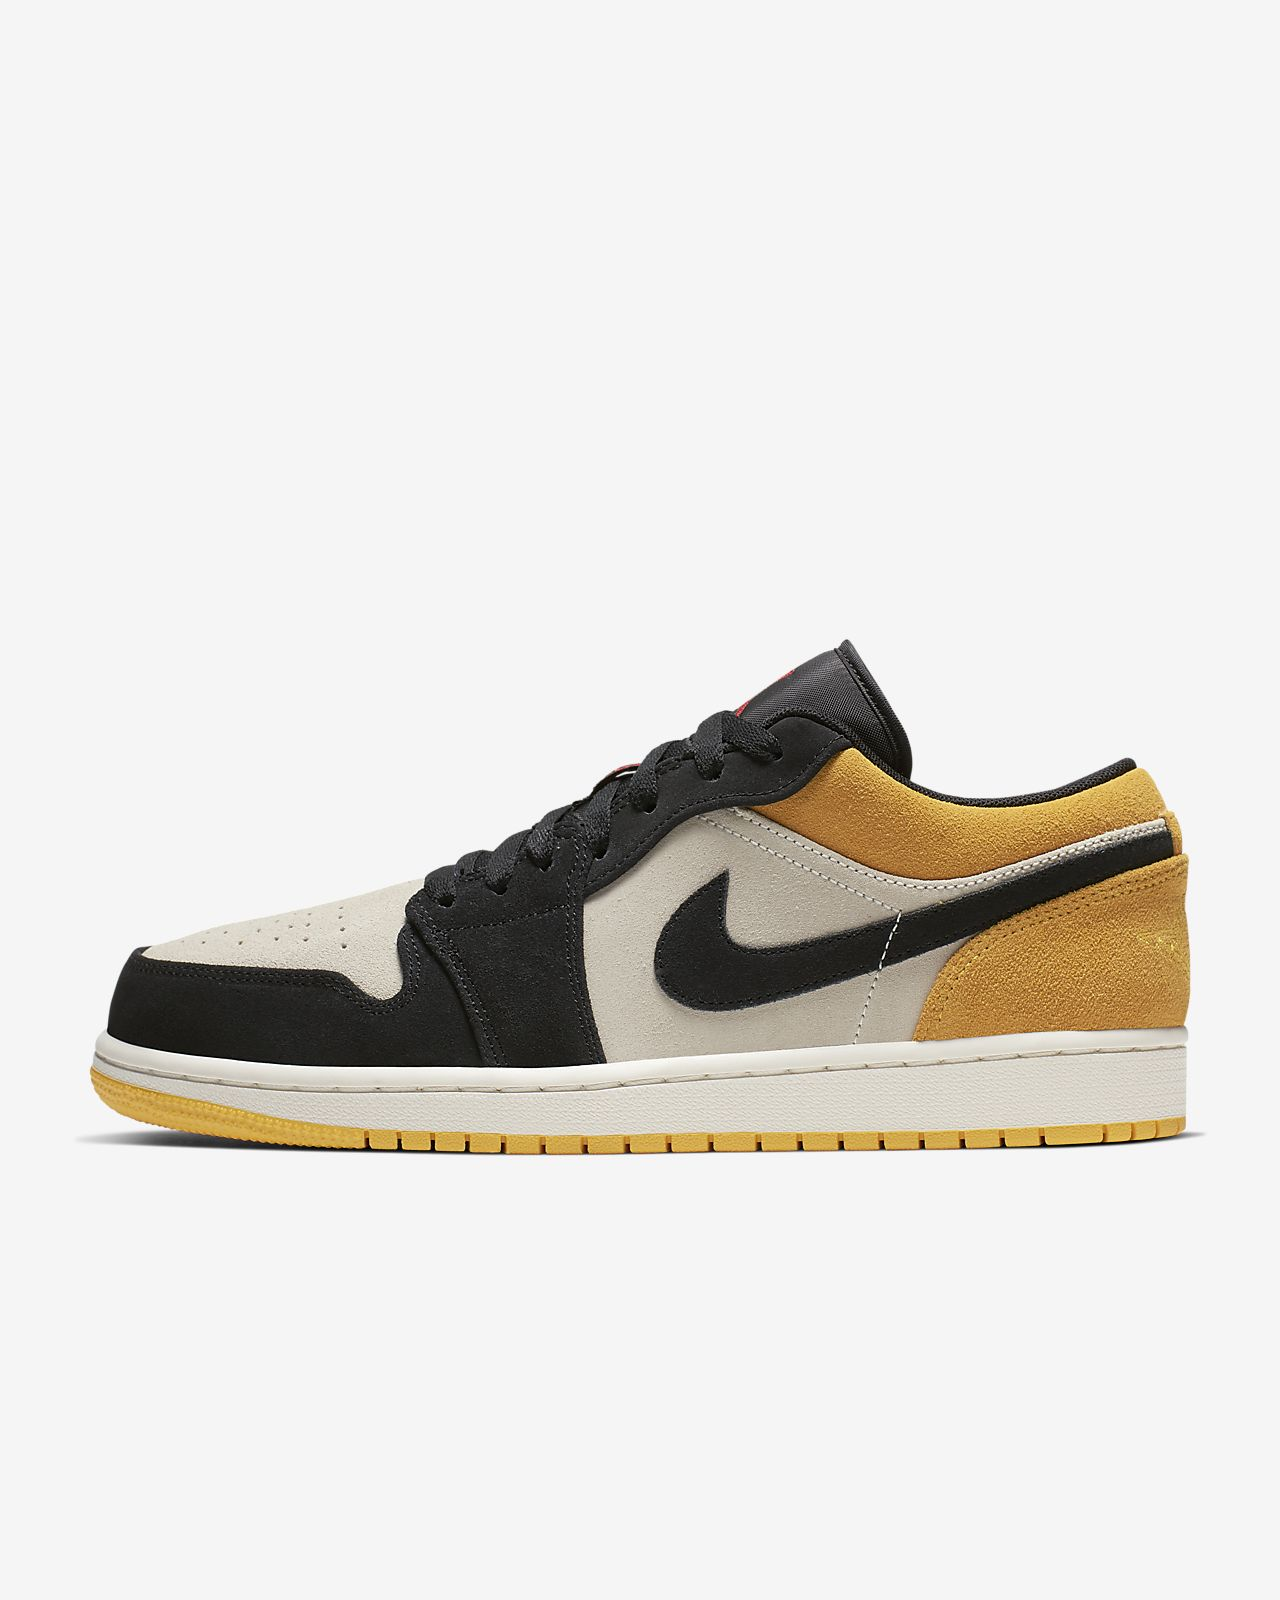 2c10d0ebc63 Air Jordan 1 Low Men s Shoe. Nike.com